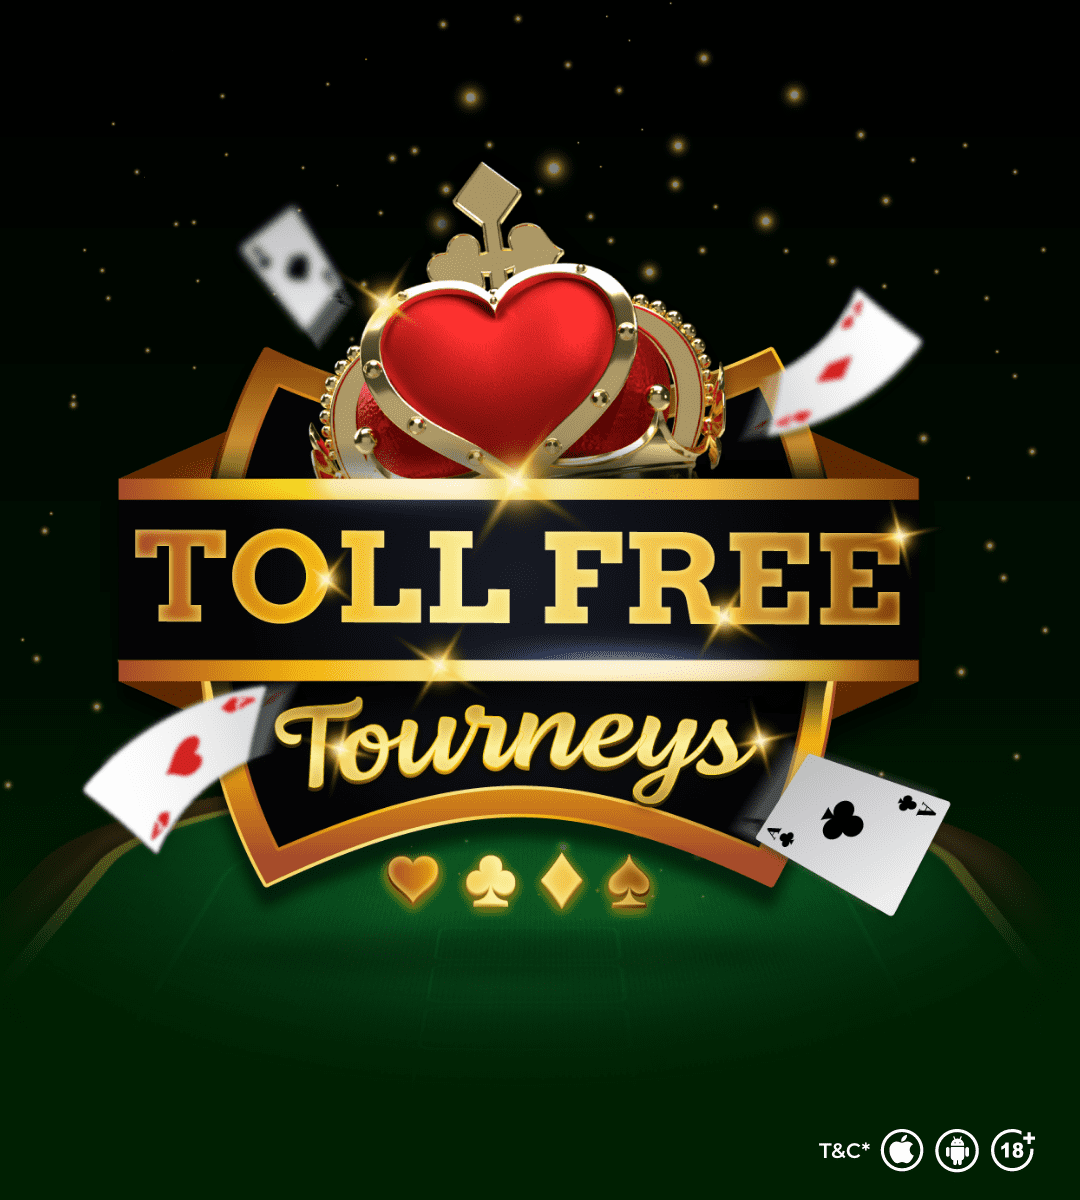 Free Roll Fever